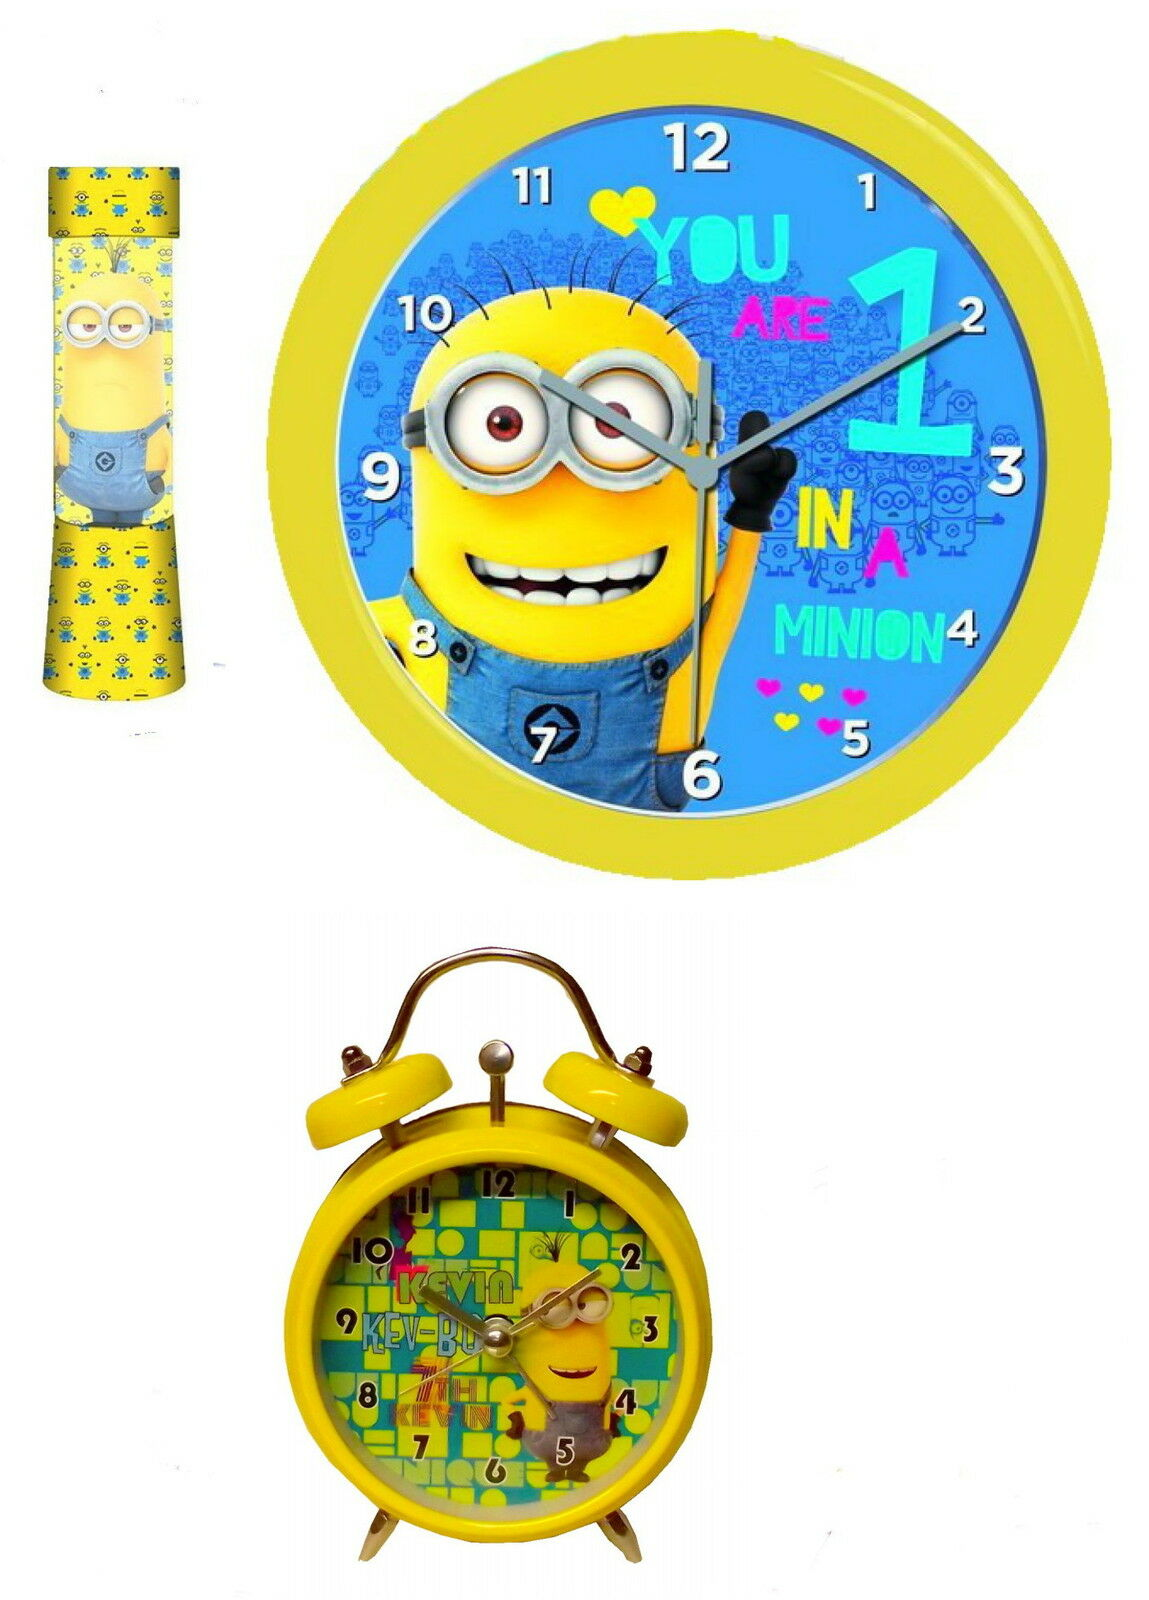 minions wanduhr wecker glitterlampe lampe optional mit handtuch eur 18 95 picclick de. Black Bedroom Furniture Sets. Home Design Ideas